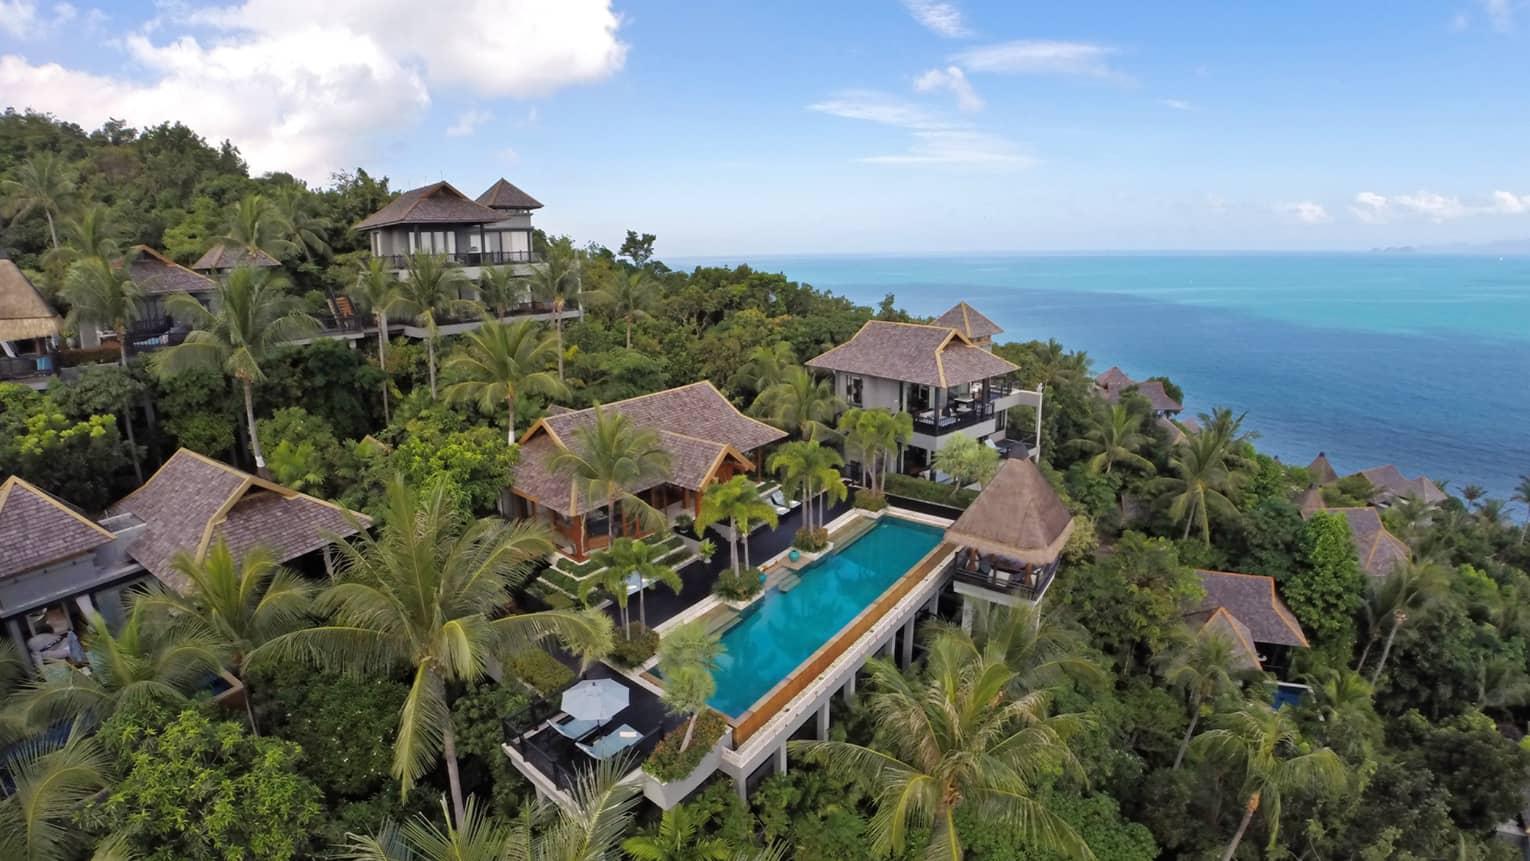 Aerial view of owner's residence villa complex around blue swimming pool, patio on tropical mountain